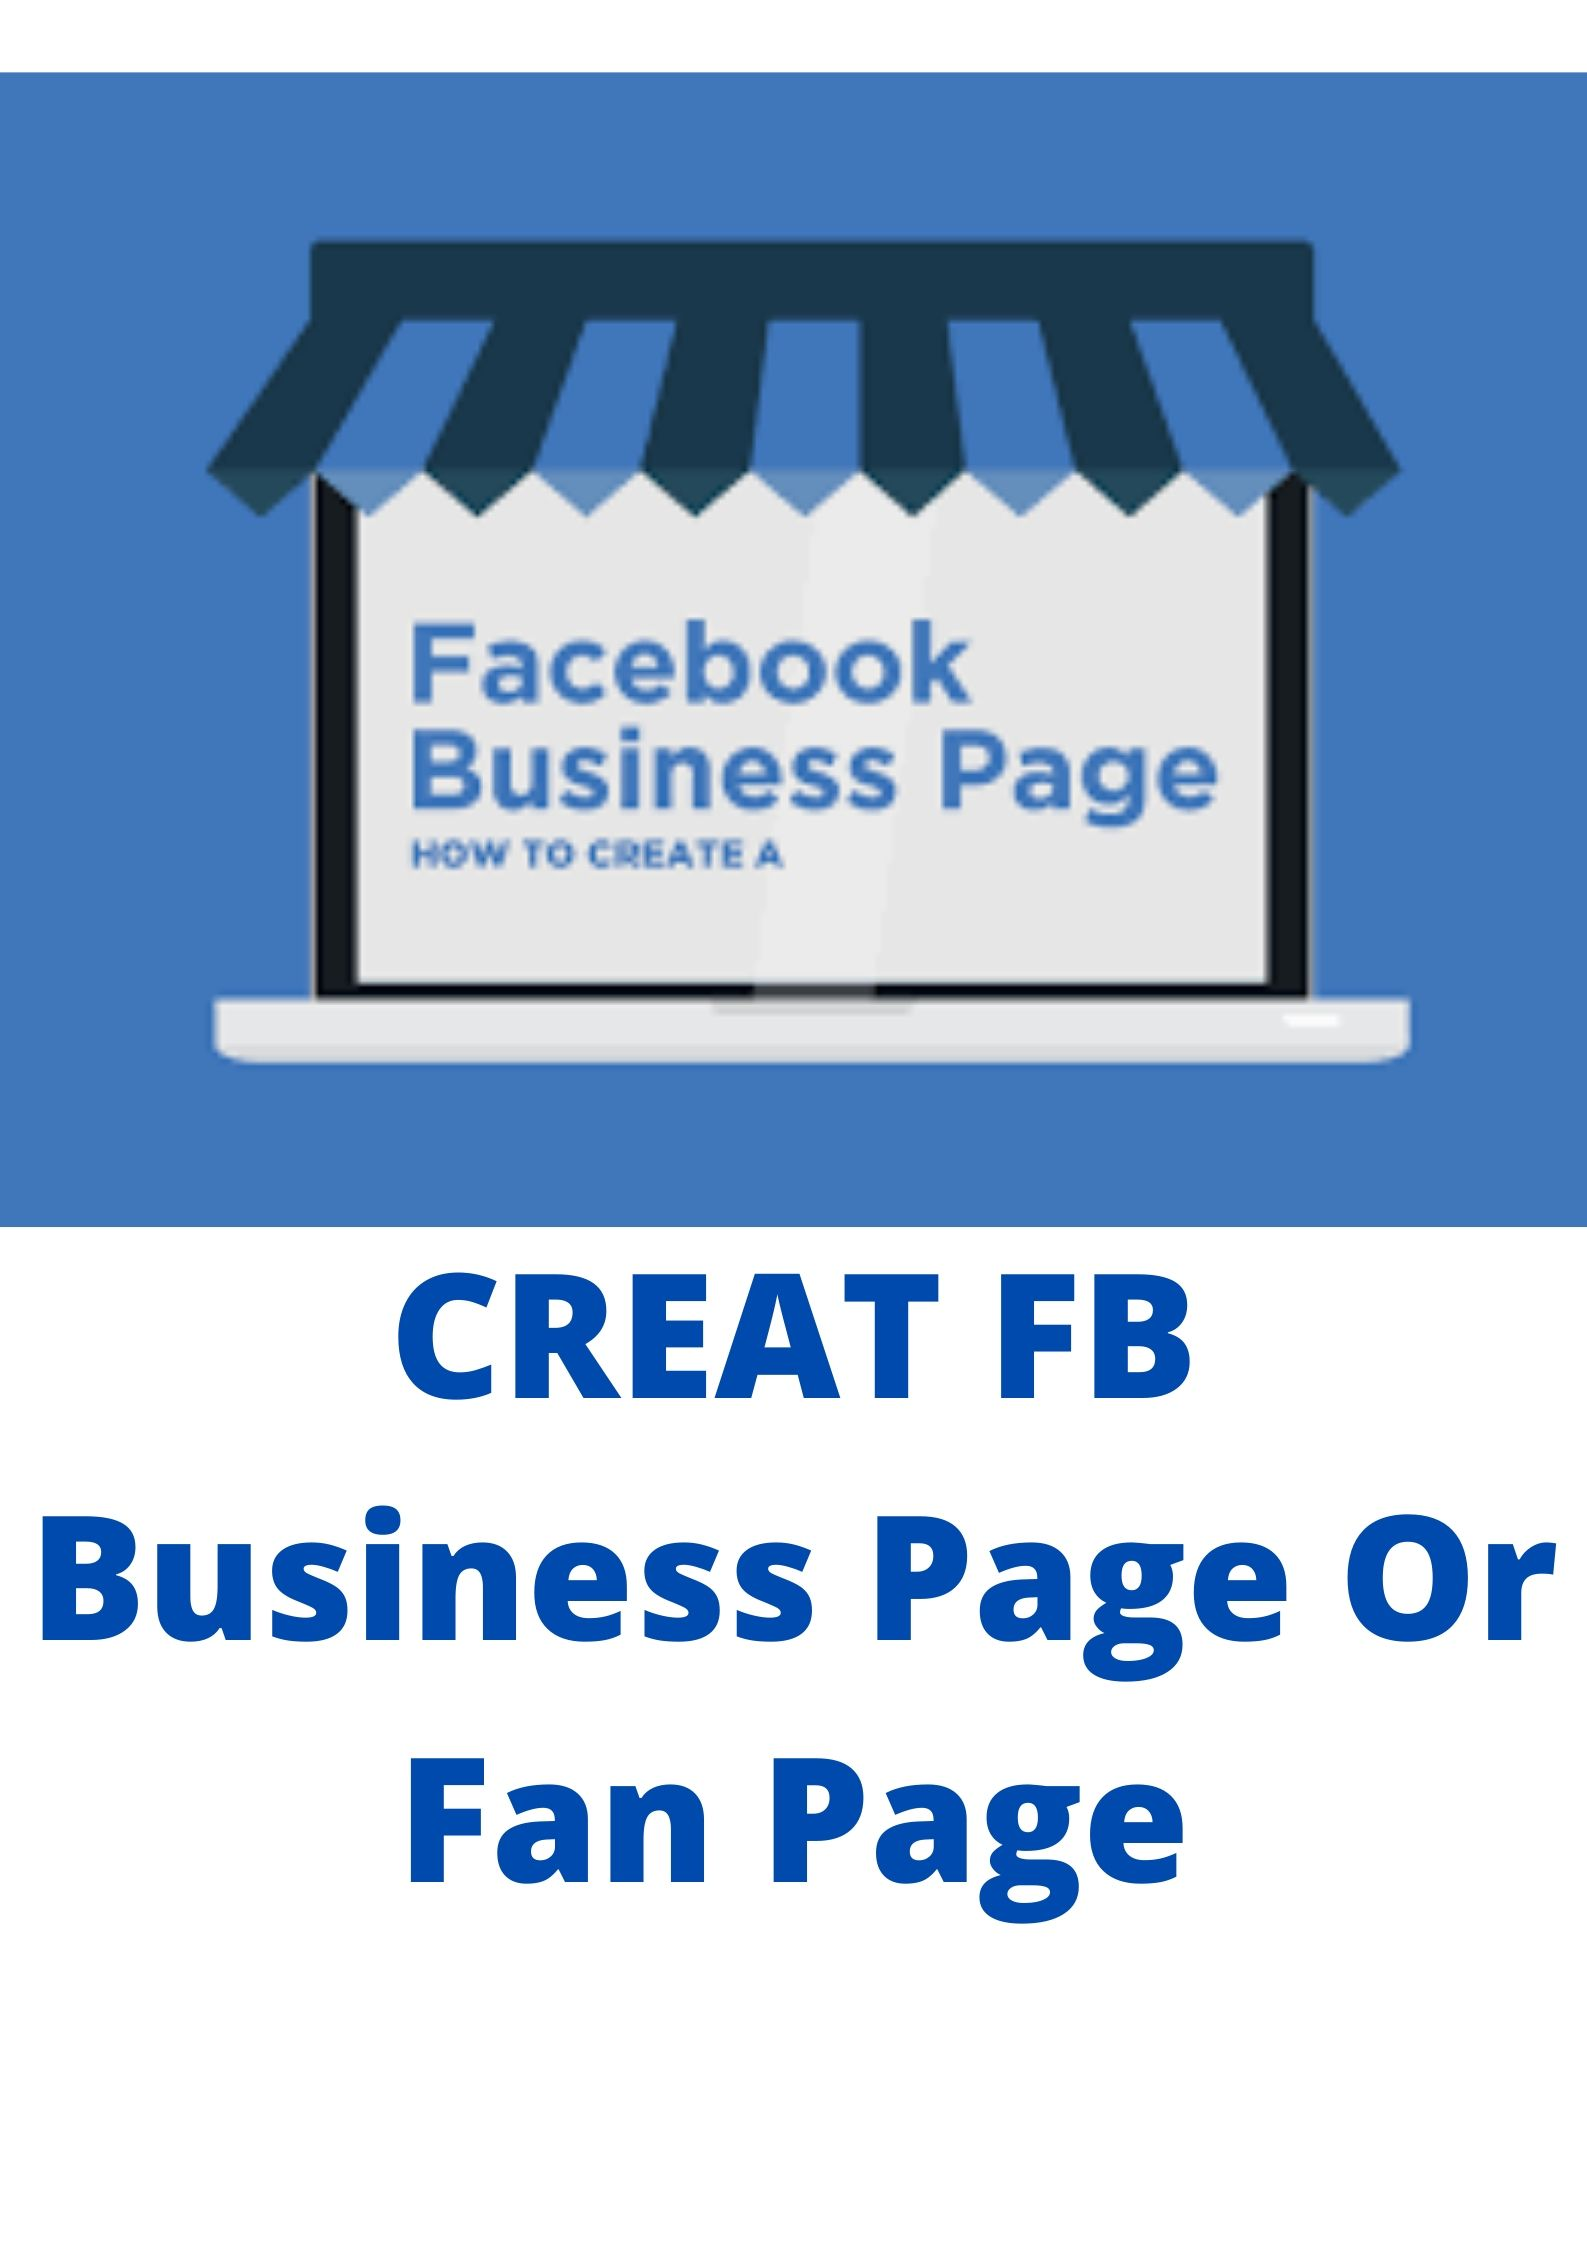 Create face book business page